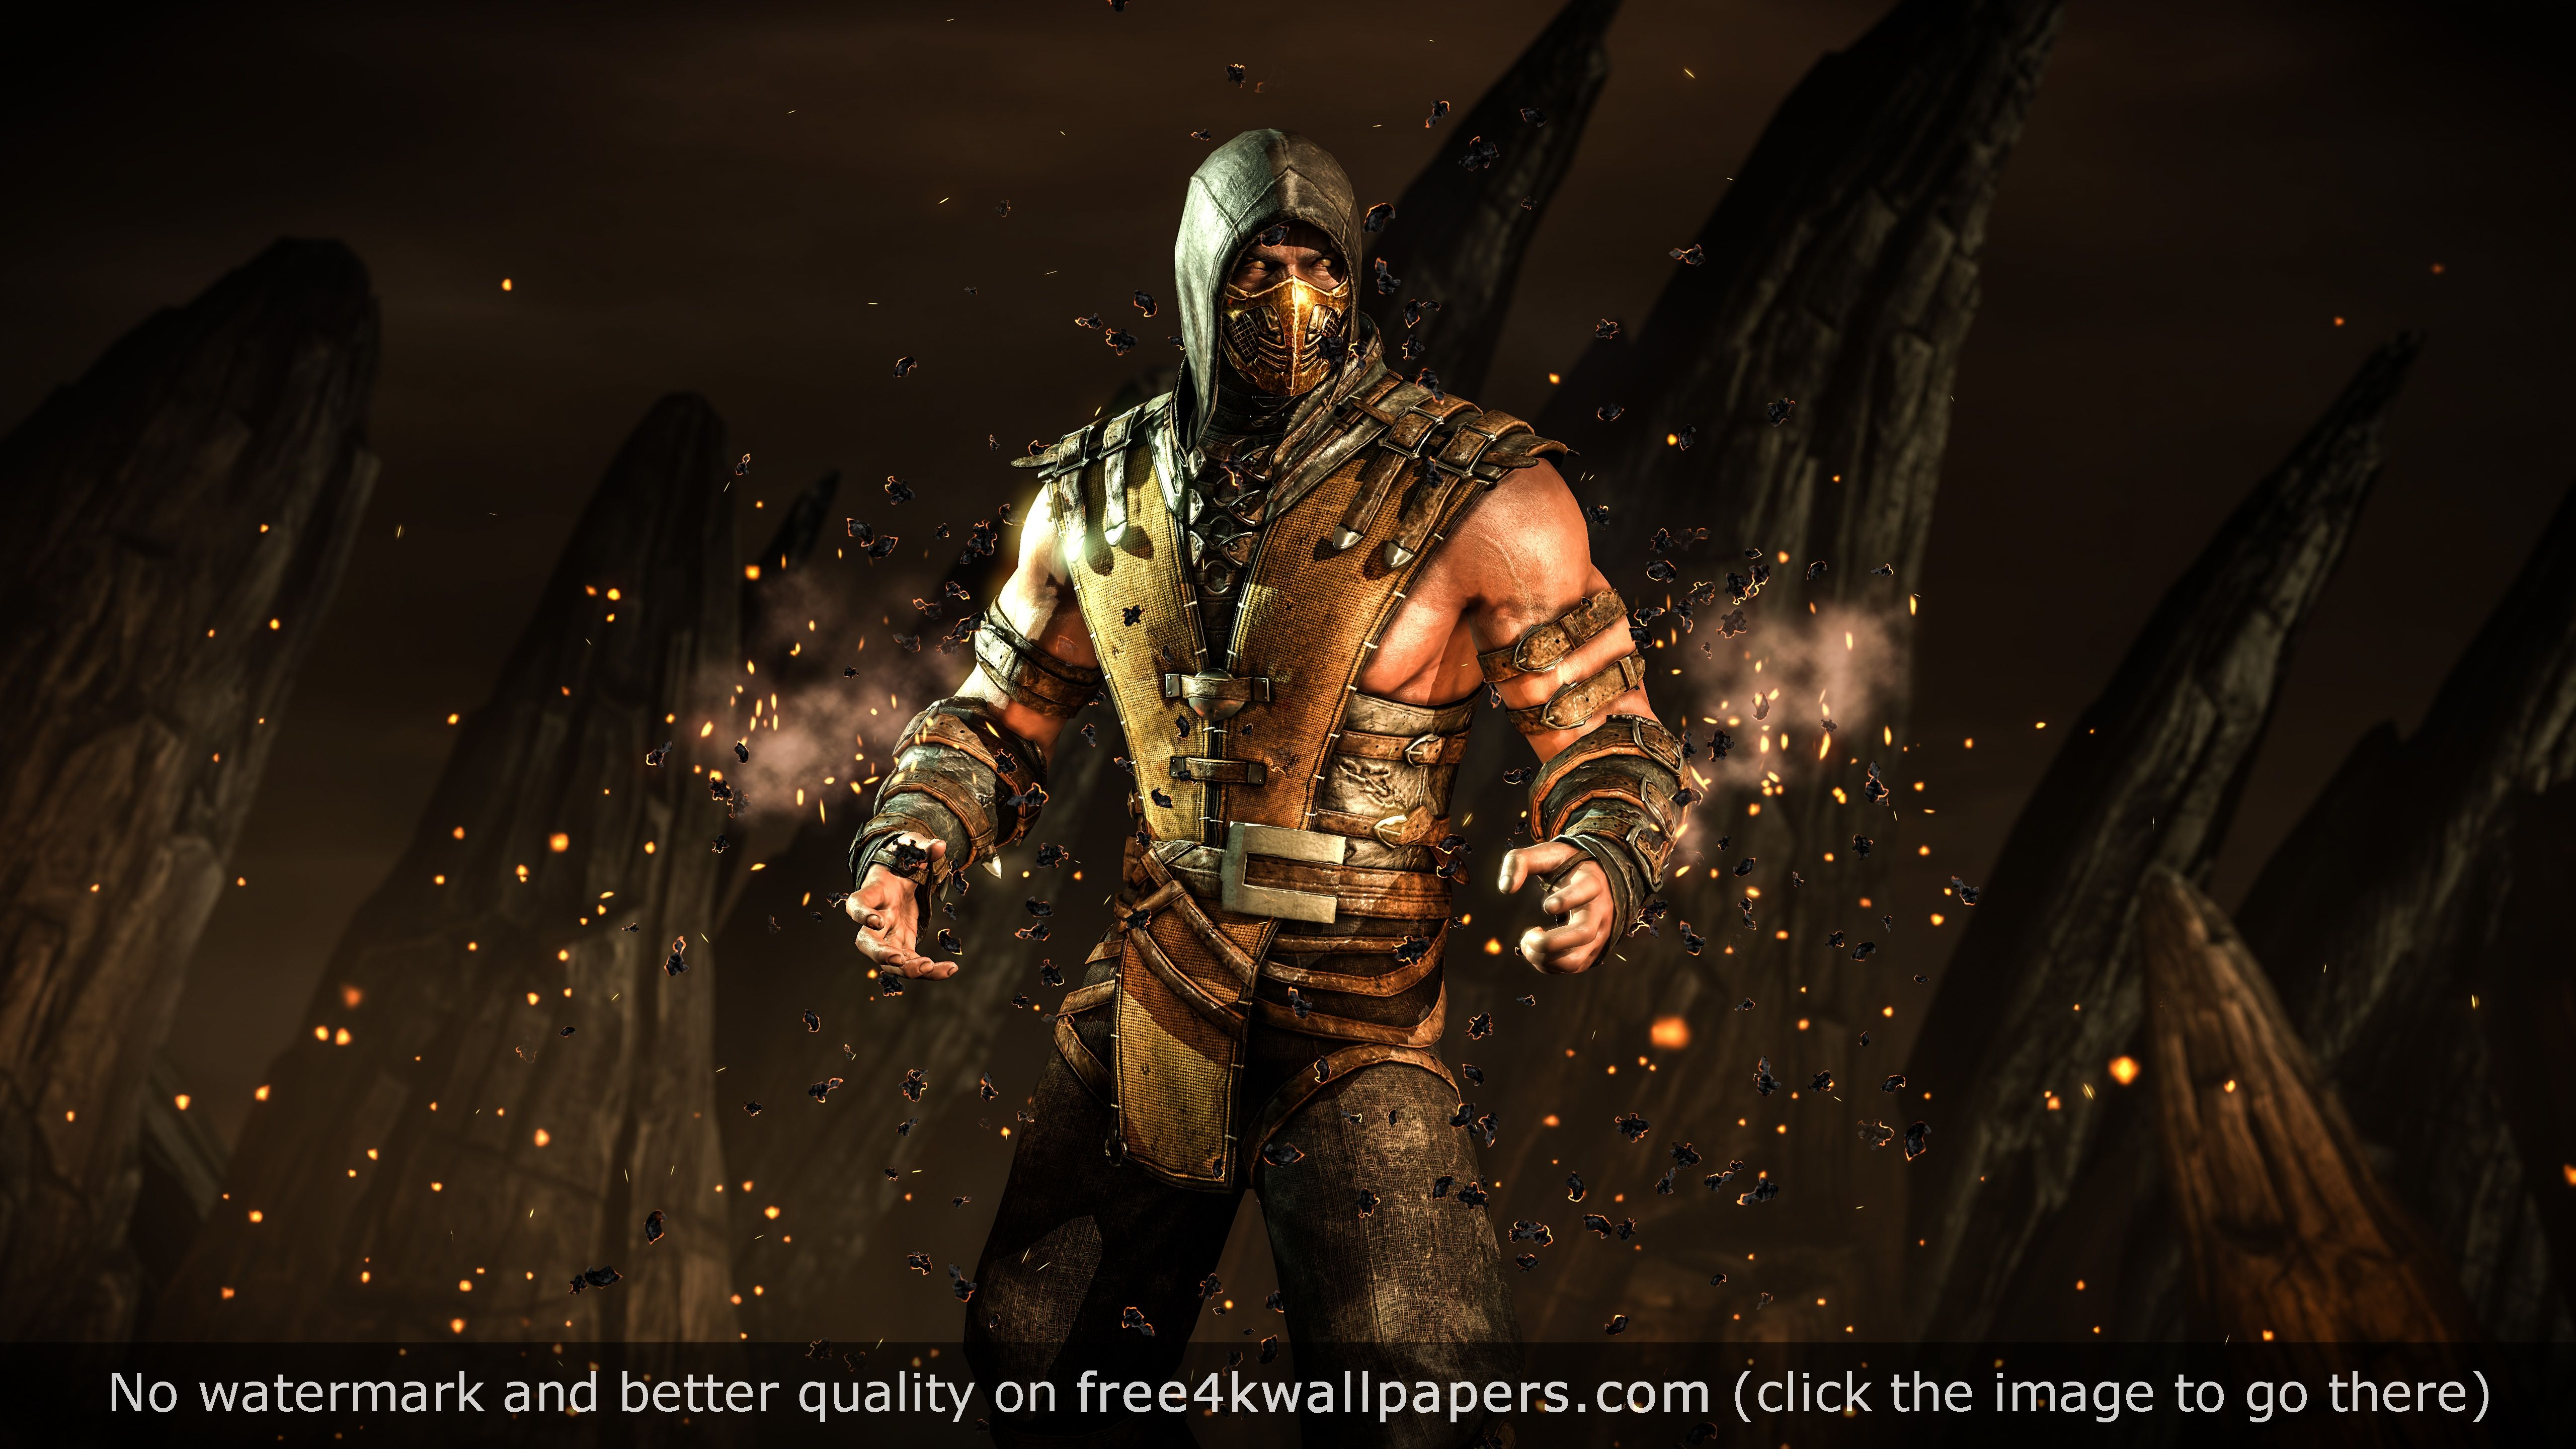 Mortal Kombat X Scorpion Hellfire 4k Wallpaper Mortal Kombat X Wallpapers Mortal Kombat X Scorpion Mortal Kombat X